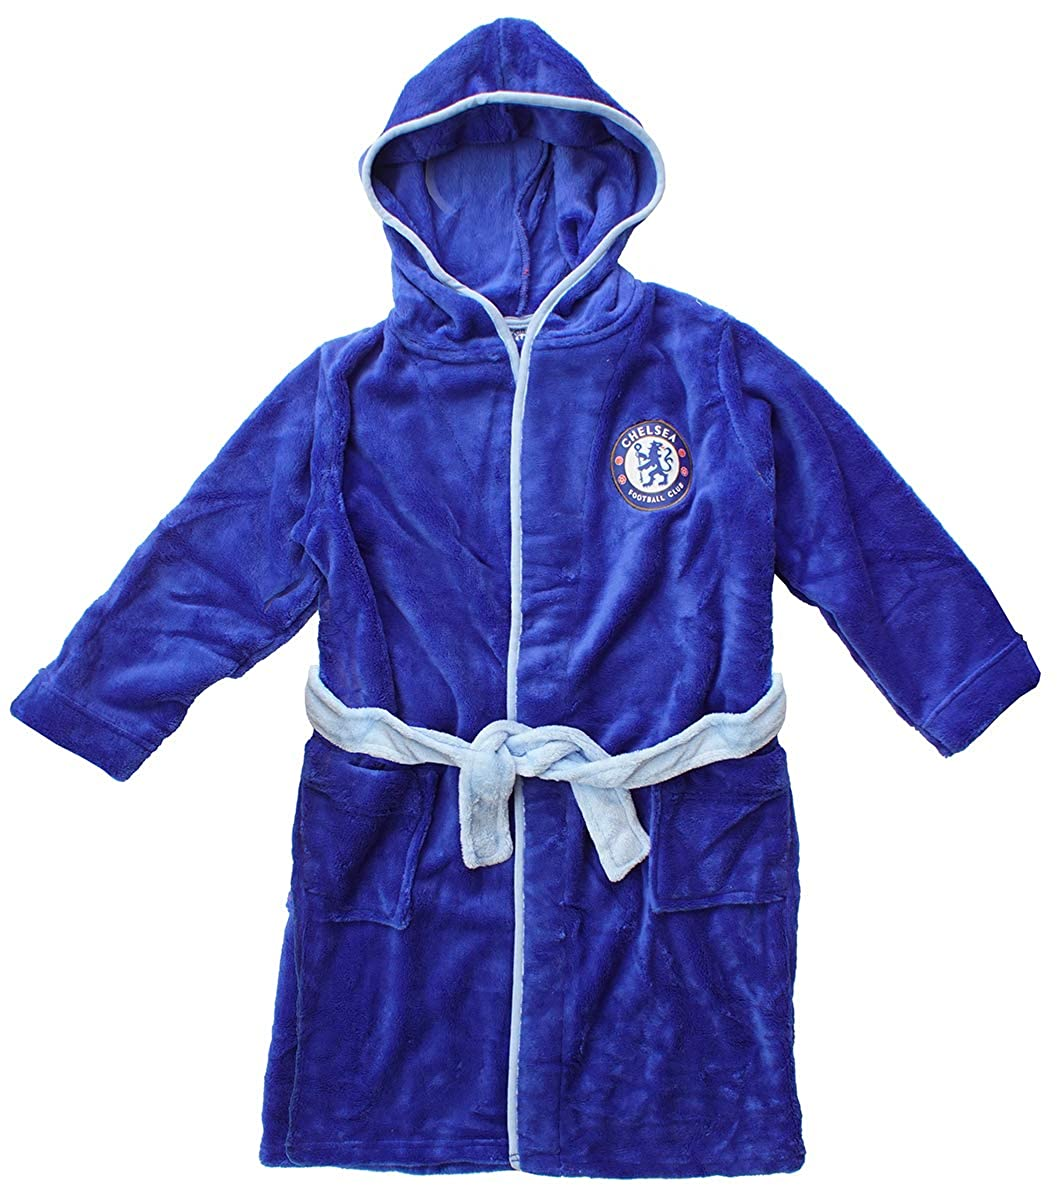 Boys Official Chelsea CFC Hooded Fleece Dressing Gown Bathrobe Sizes from 3 to 12 Years